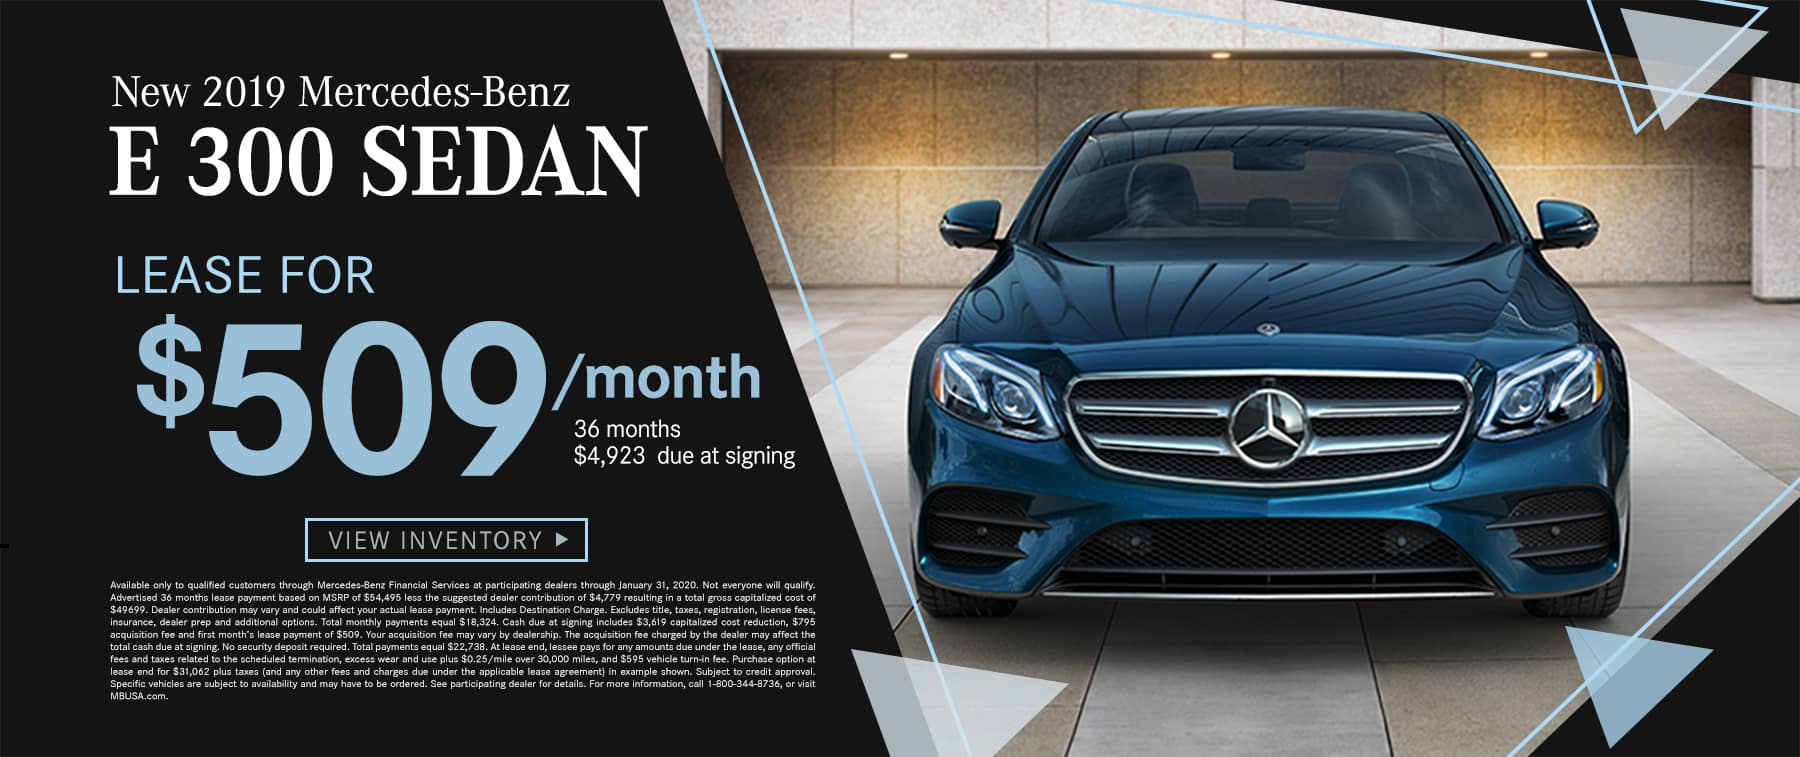 2019 E 300 Sedan $519 Per Month 36 Months/10k Miles $4933 Due at signing